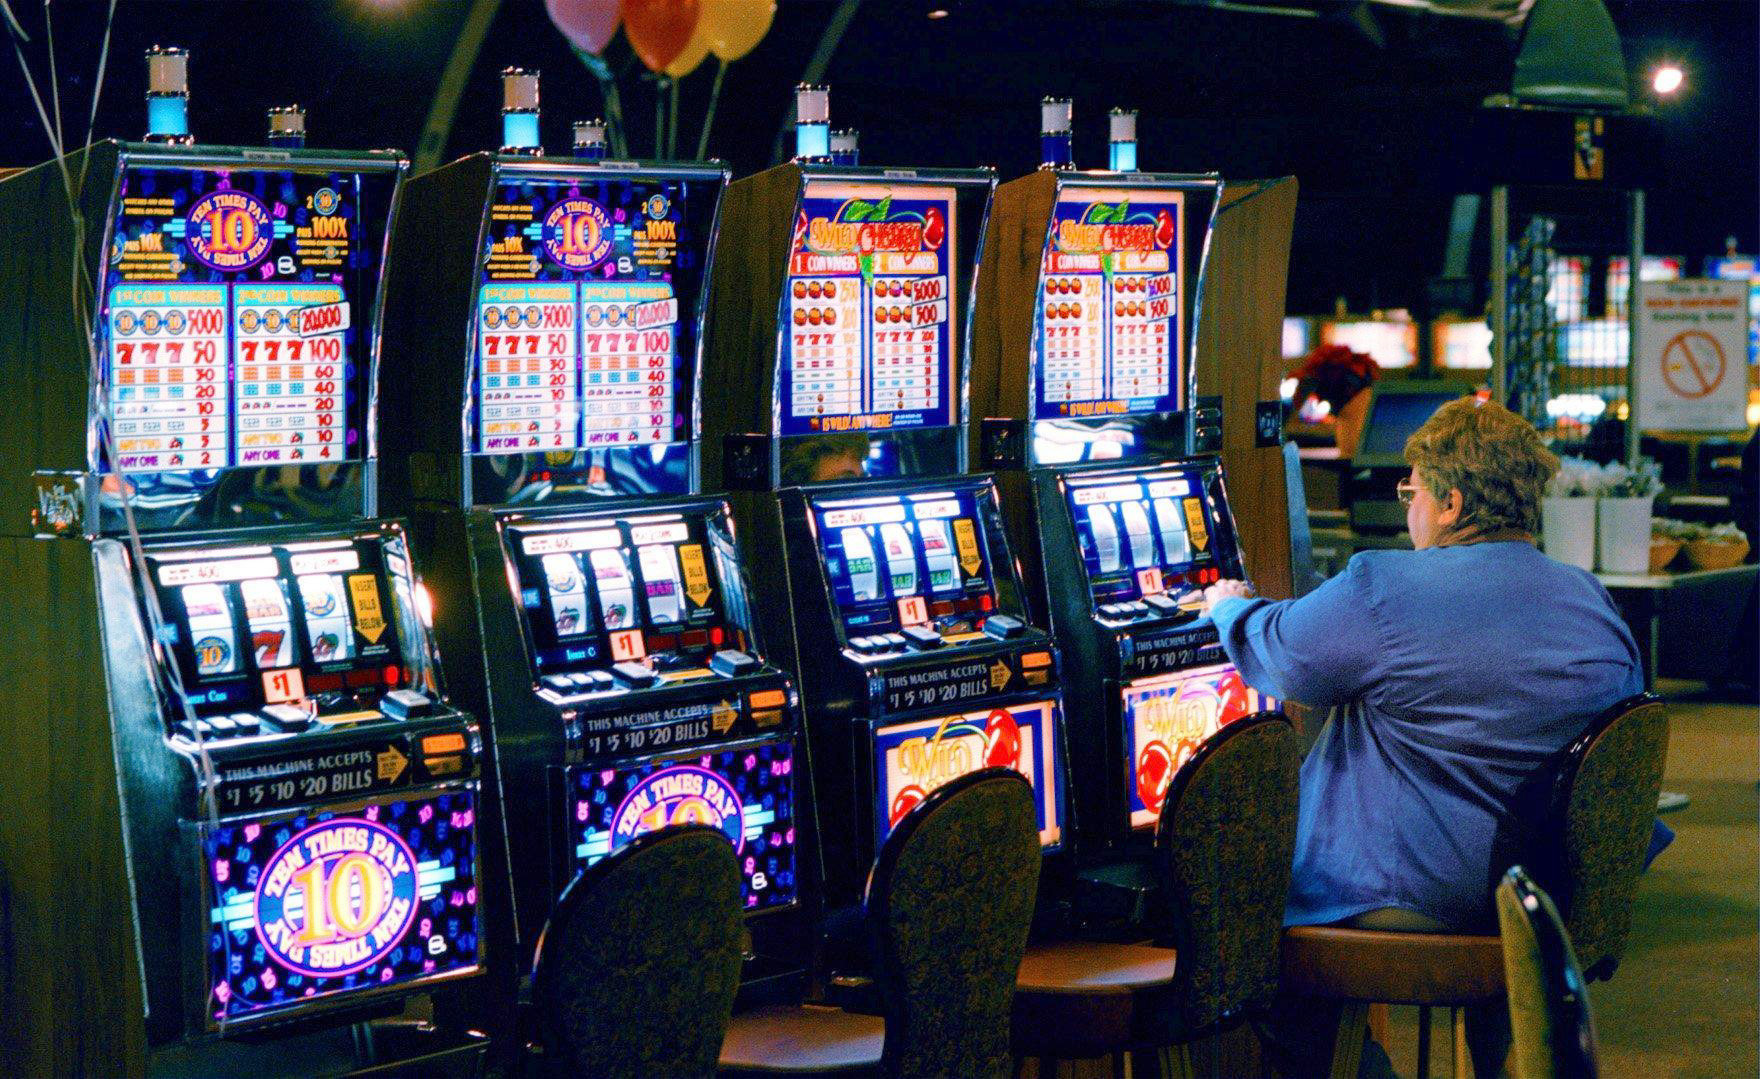 Lottery casino casino slots problems quantifying social costs benefits gambling